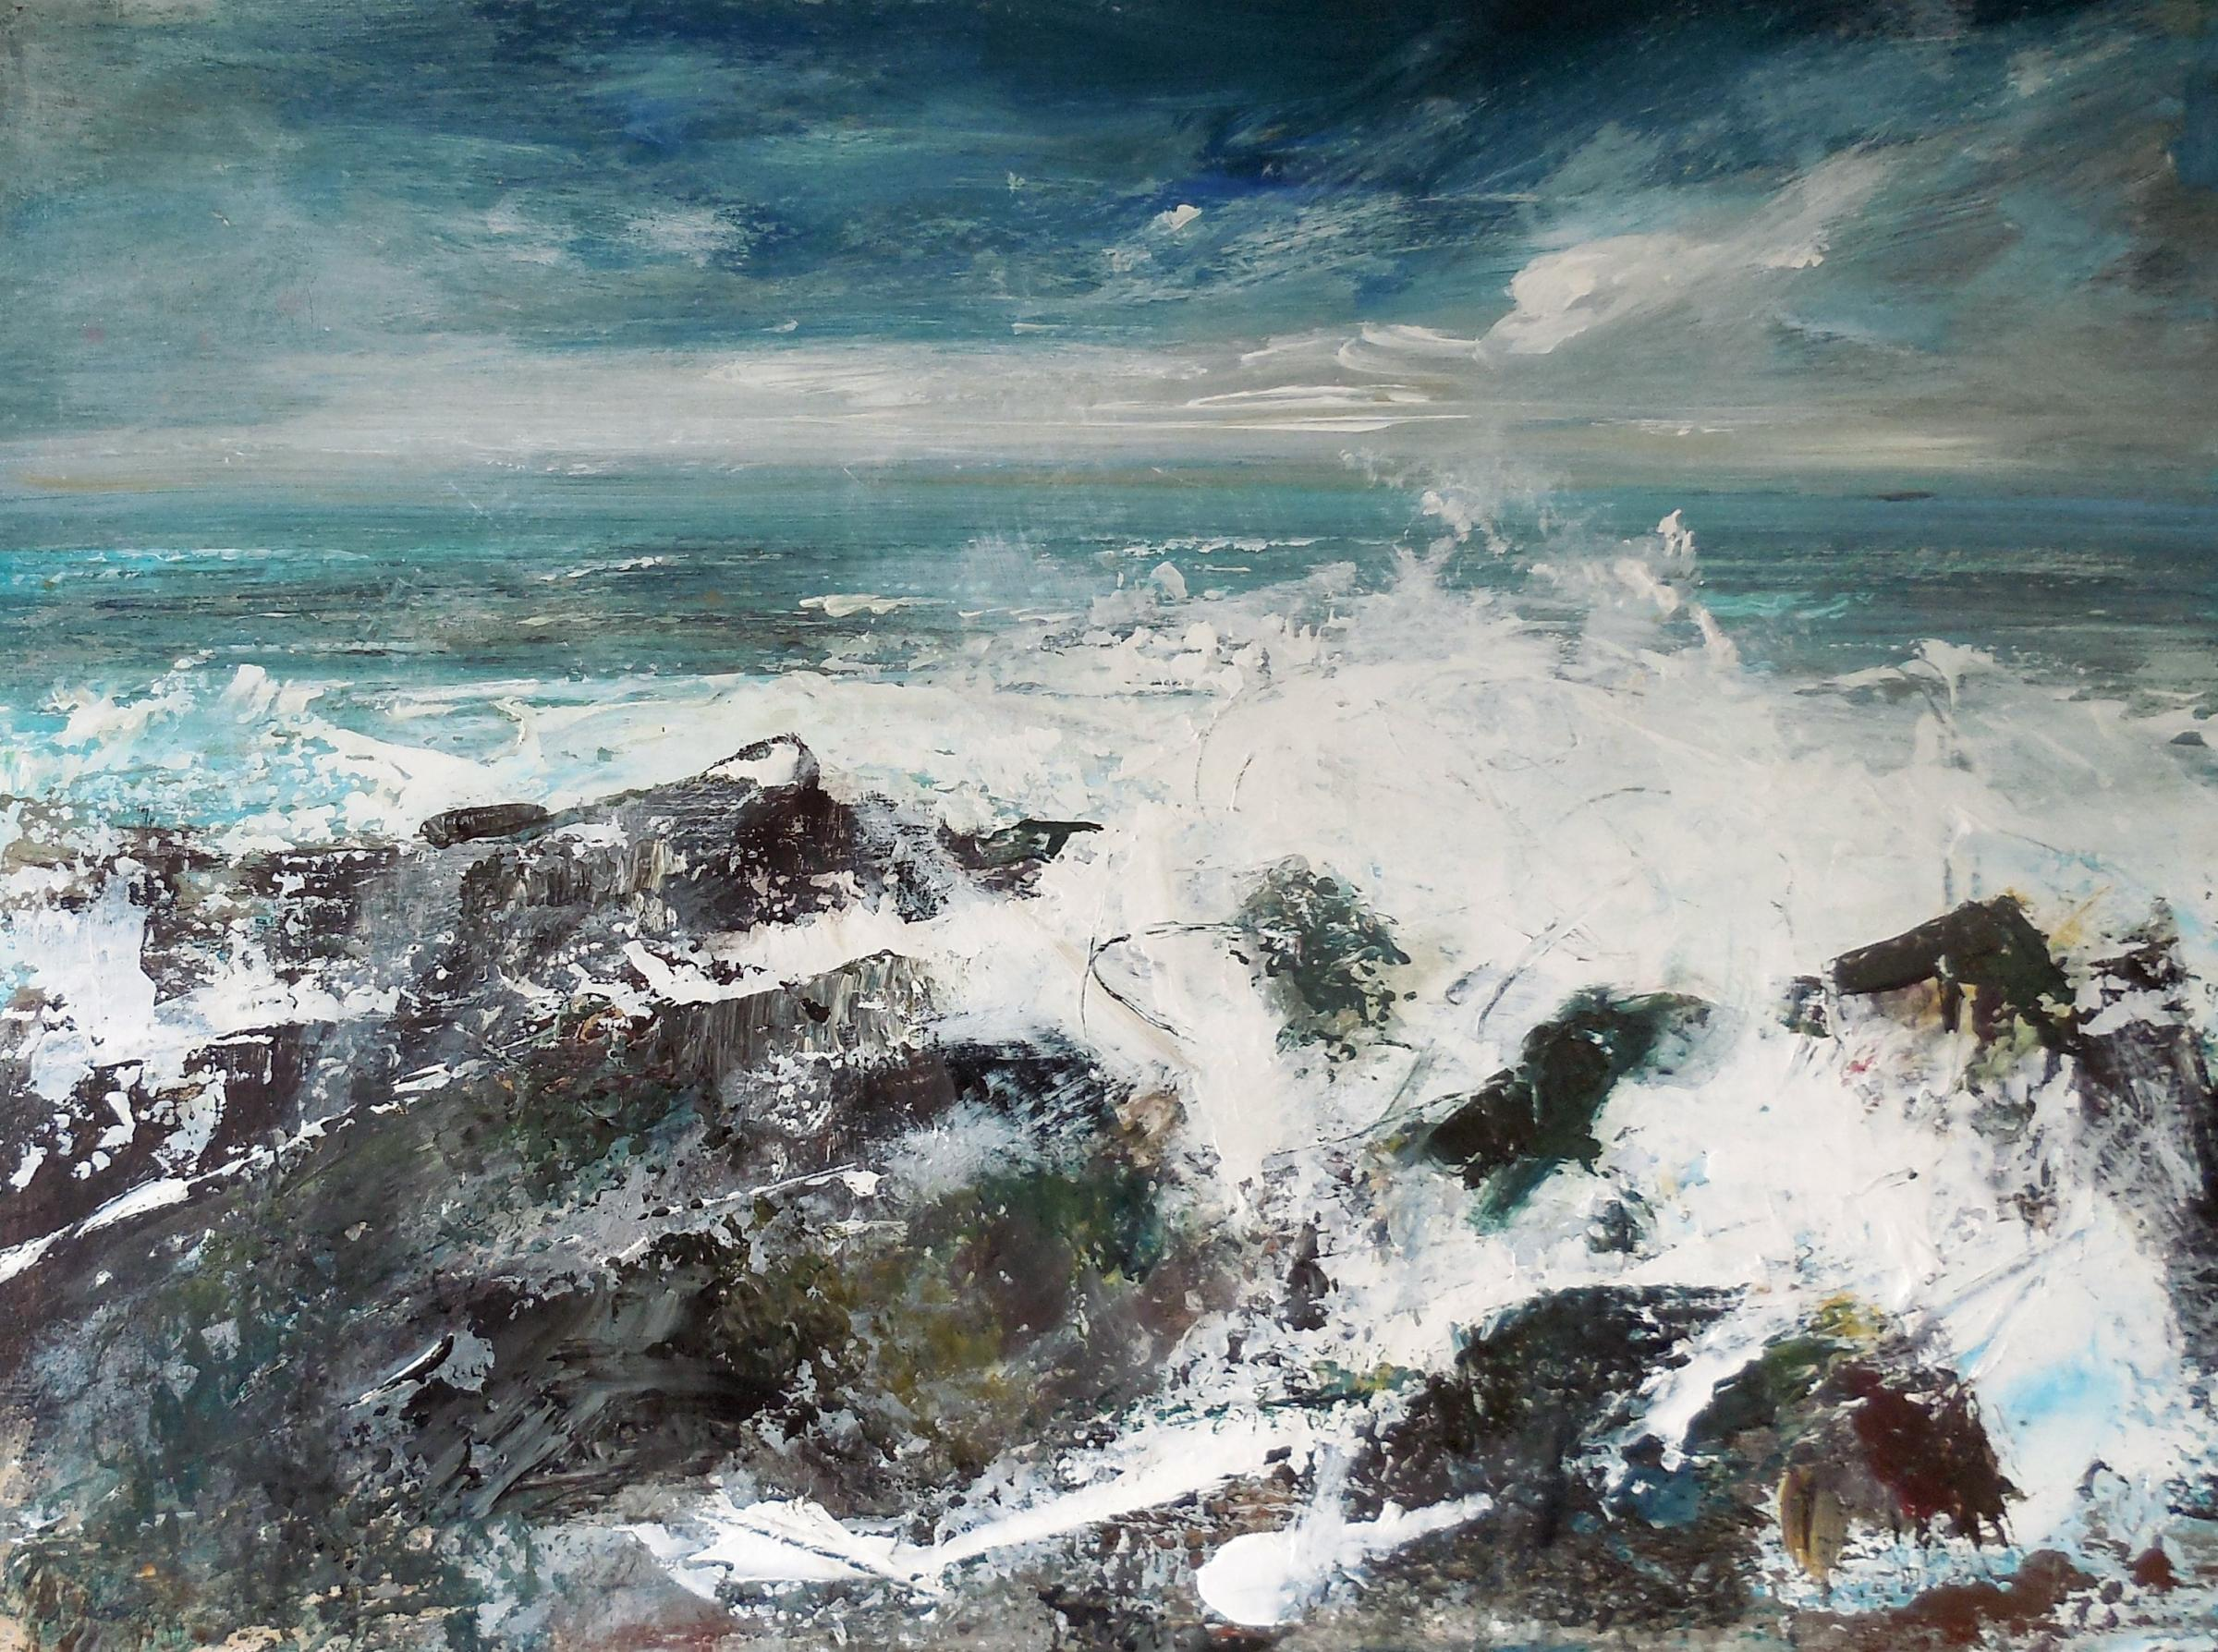 Work in new exhibition is inspired by shorelines of Scotland and western Ireland